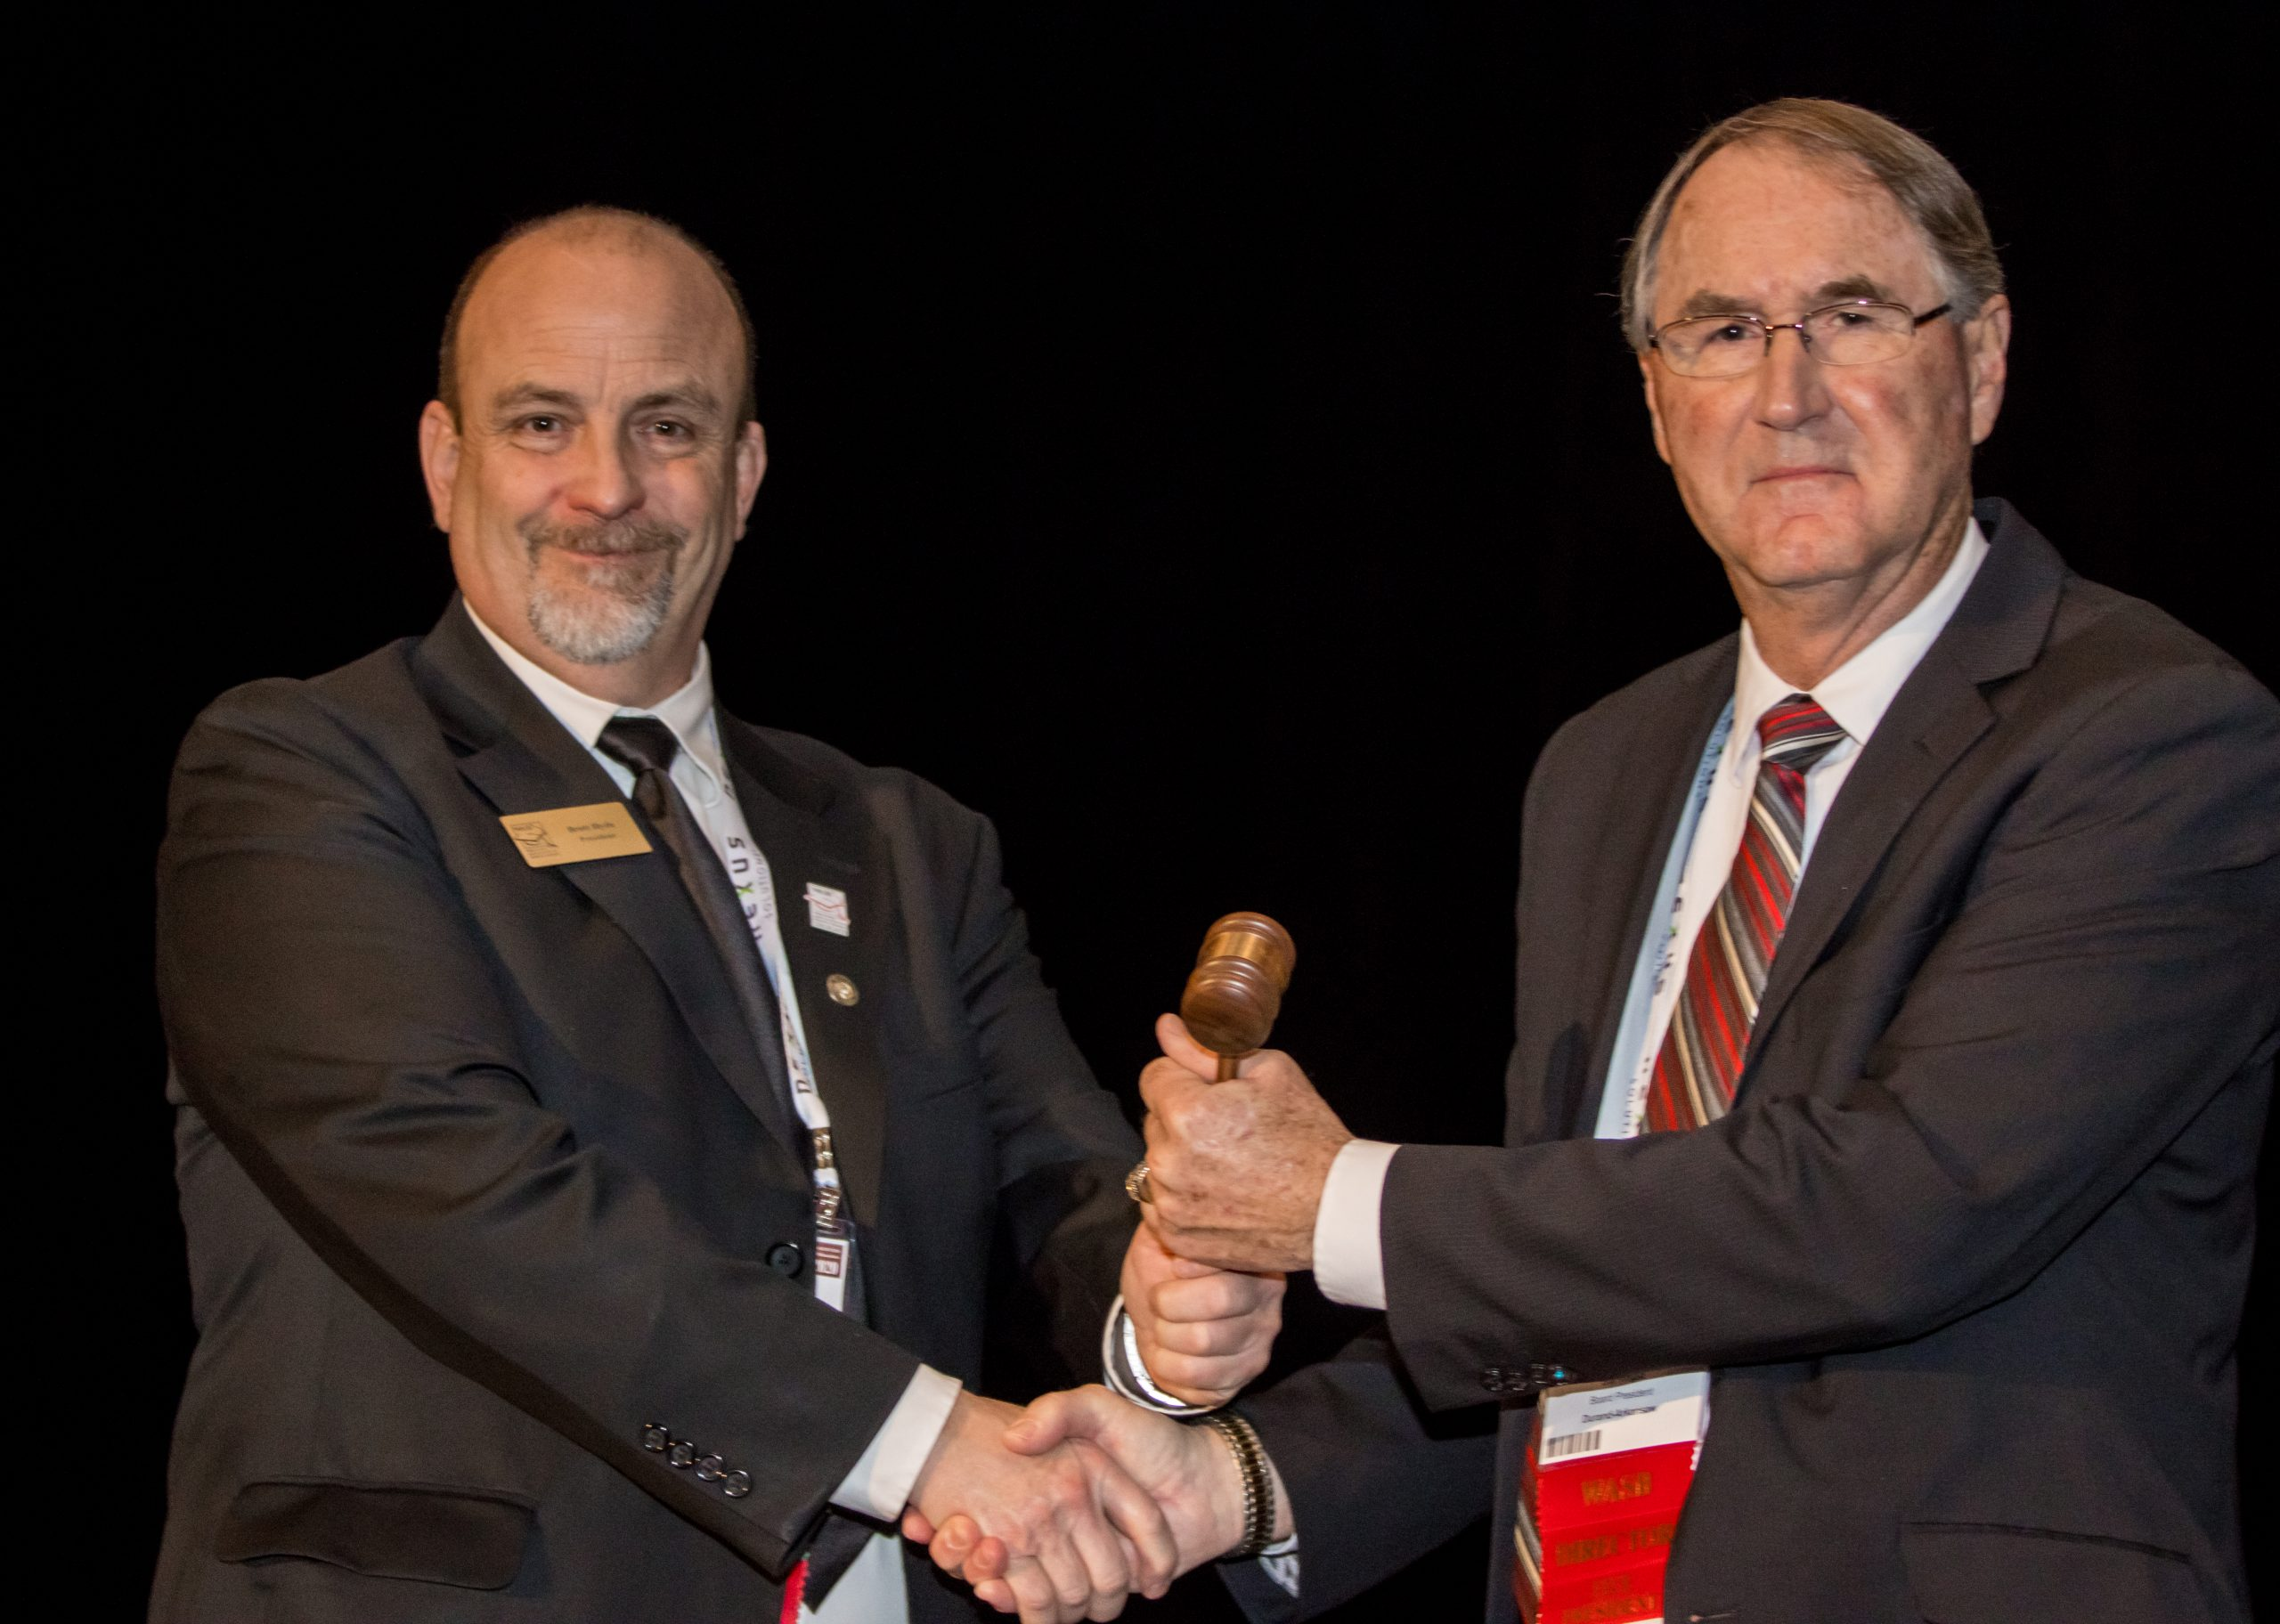 WASB Immediate Past President Brett Hyde, left, passes the gavel to incoming WASB President Bill Yingst, Sr.